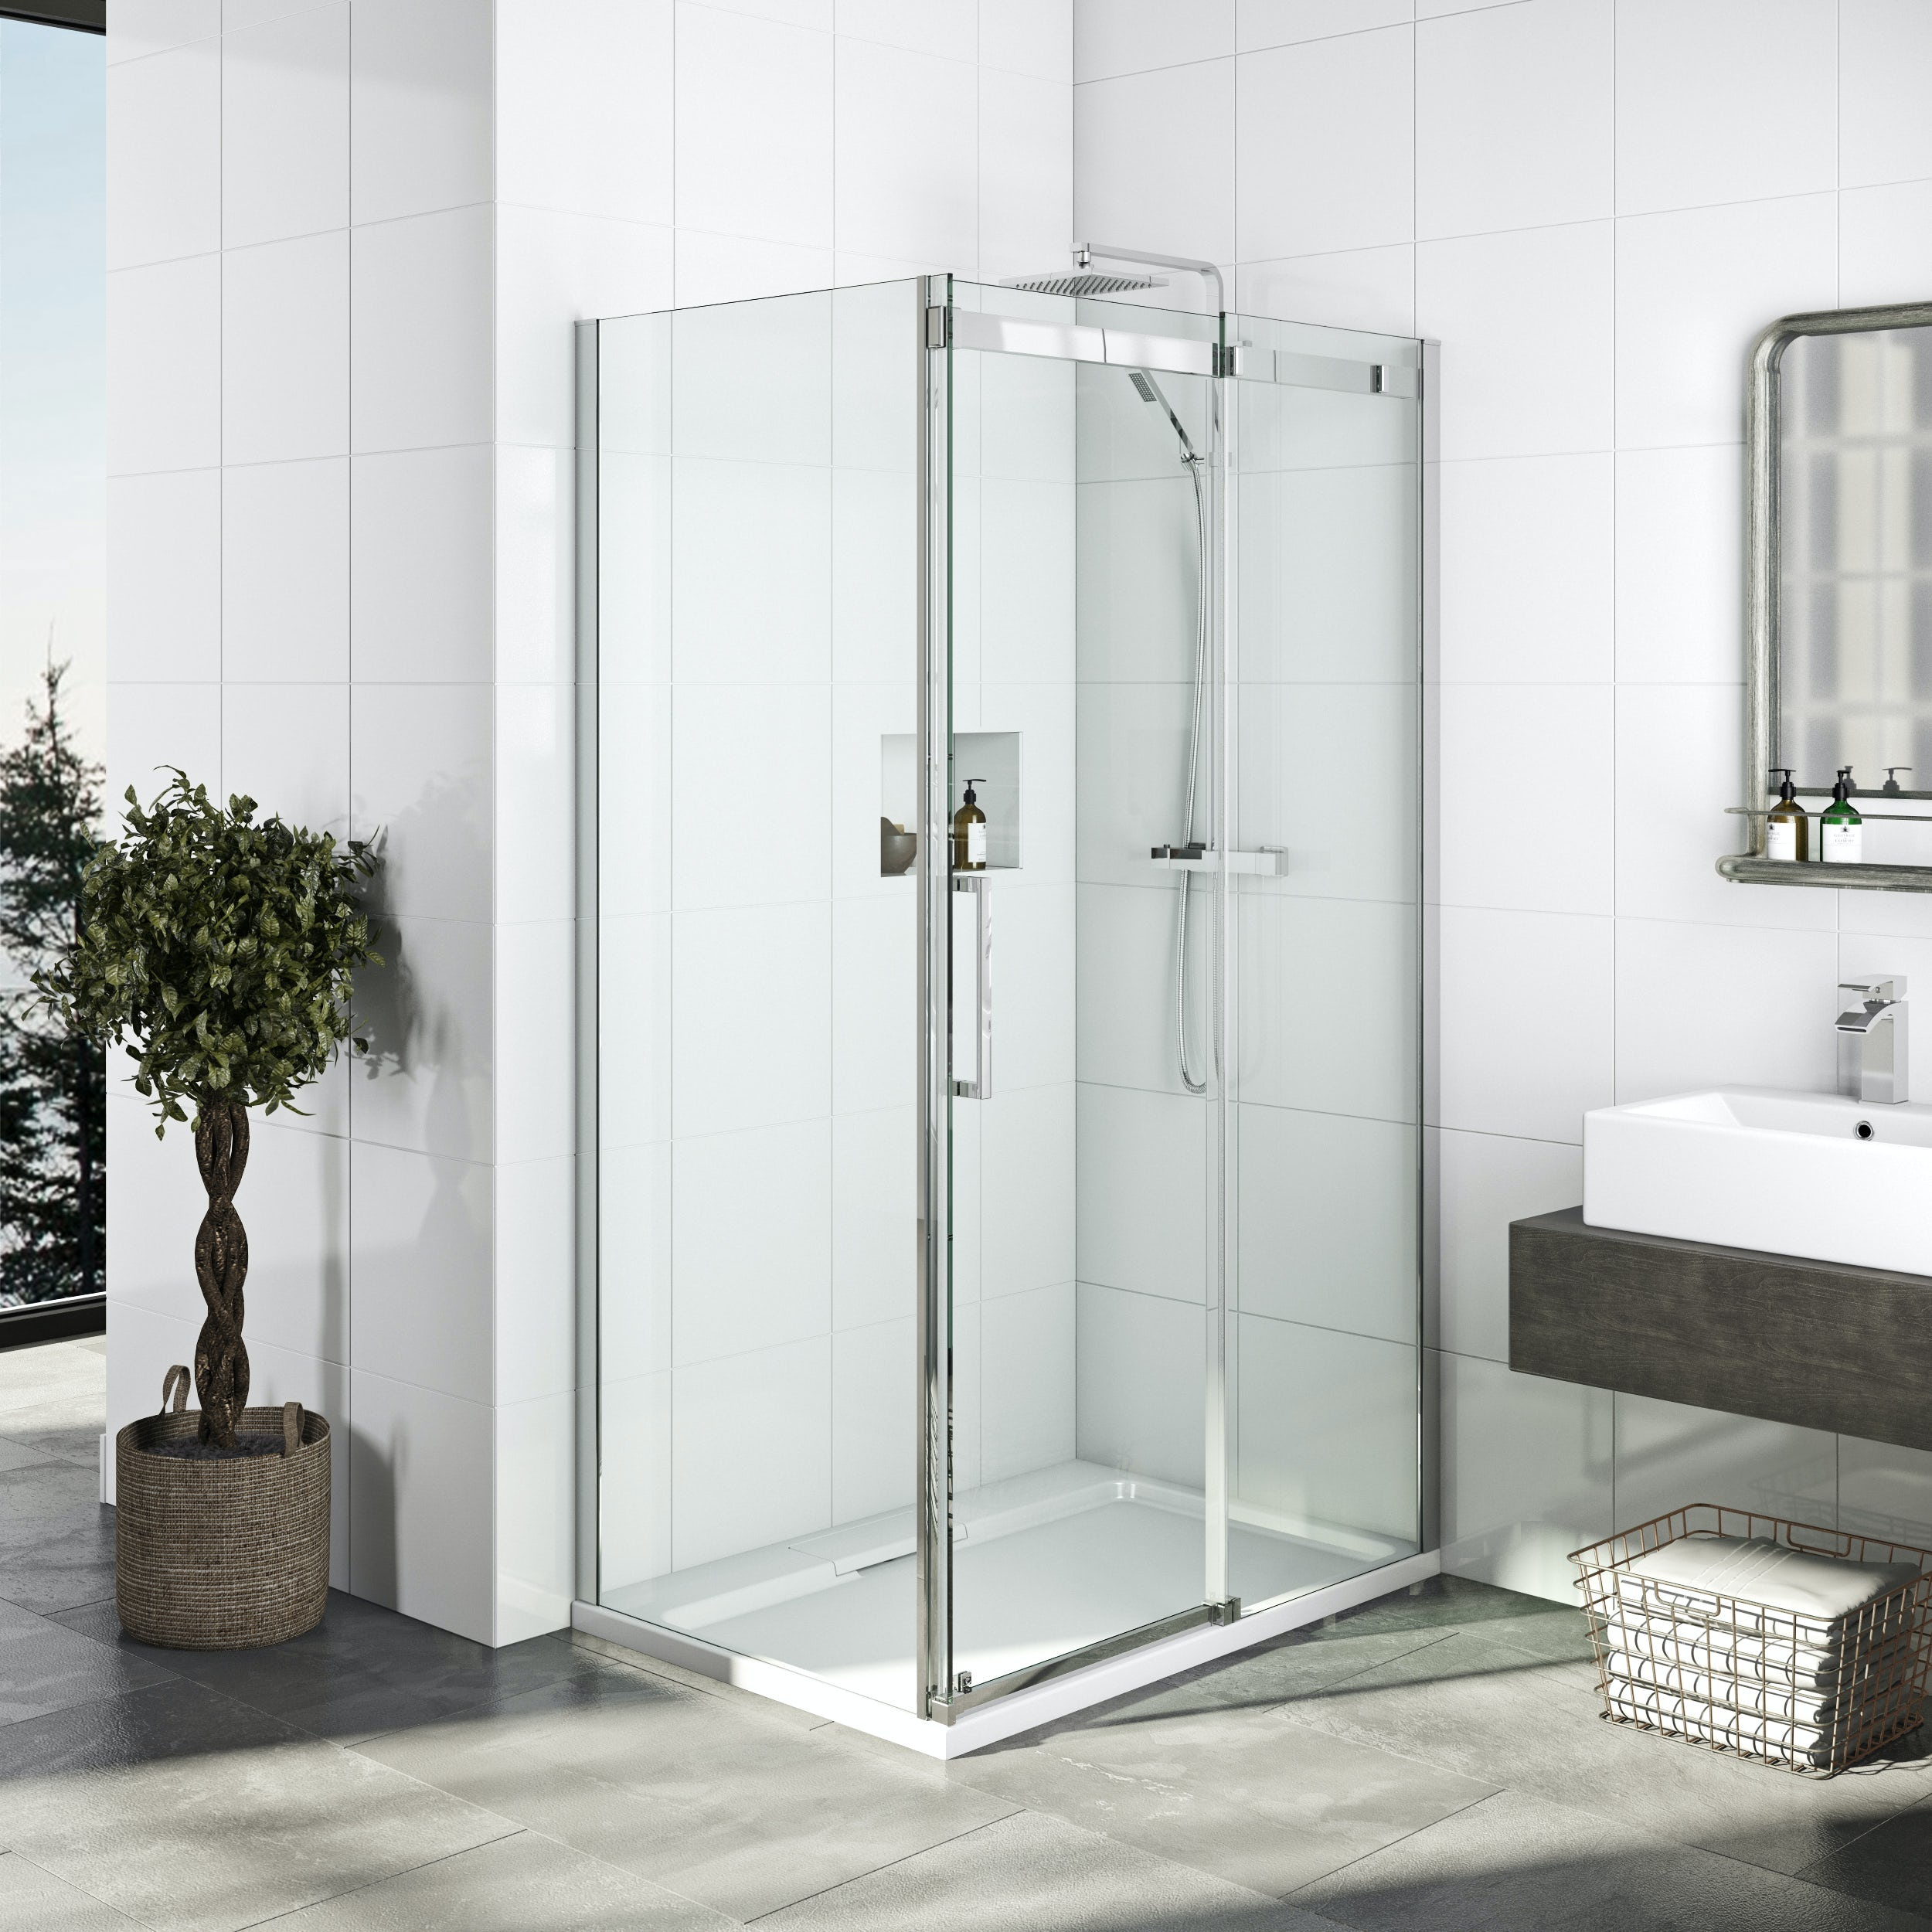 Elite 10mm Frameless Sliding Shower Enclosure